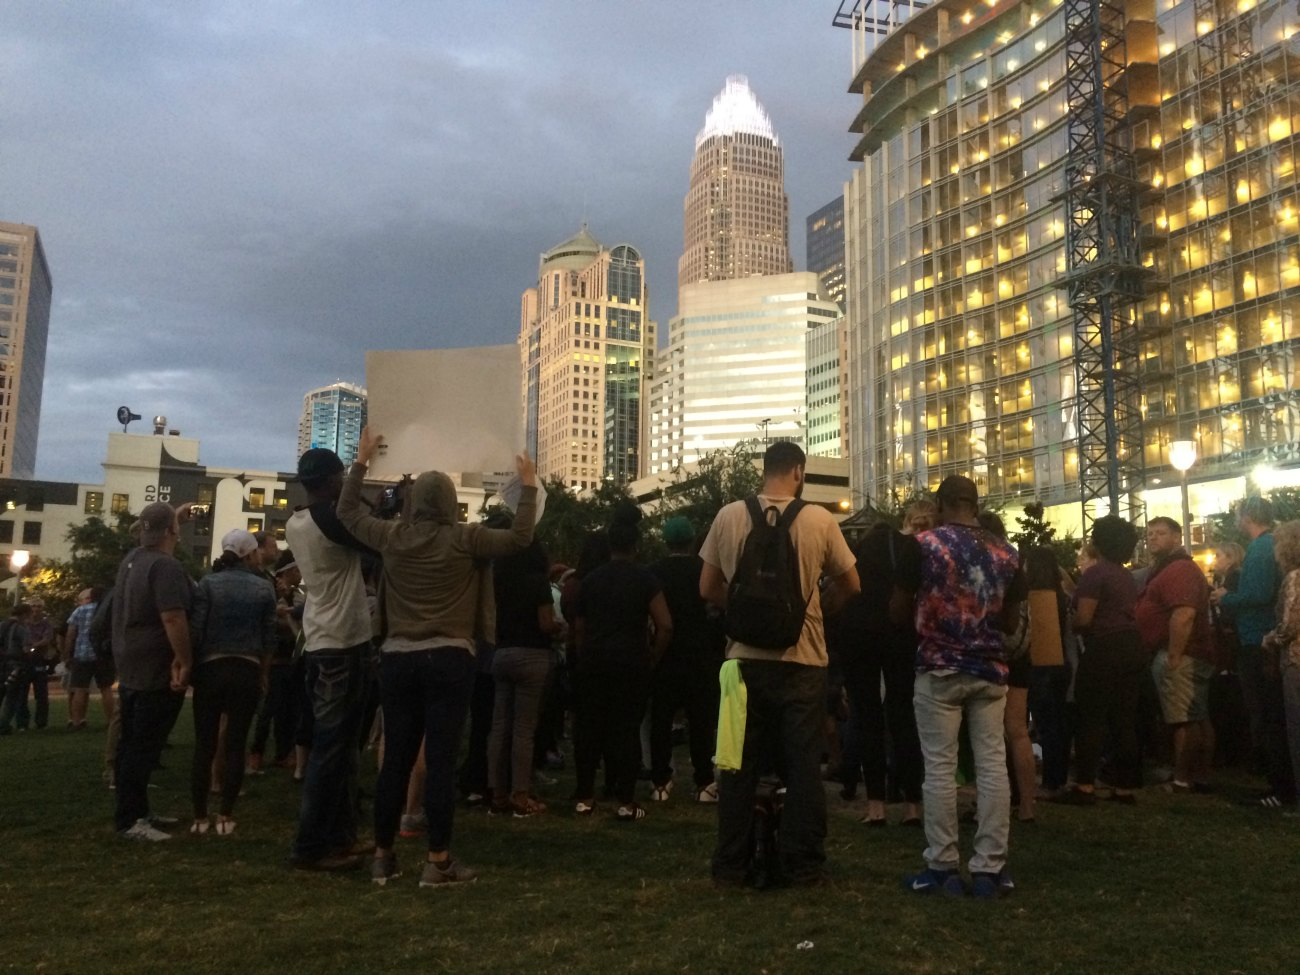 Statement signed by over 200 Charlotte community leaders